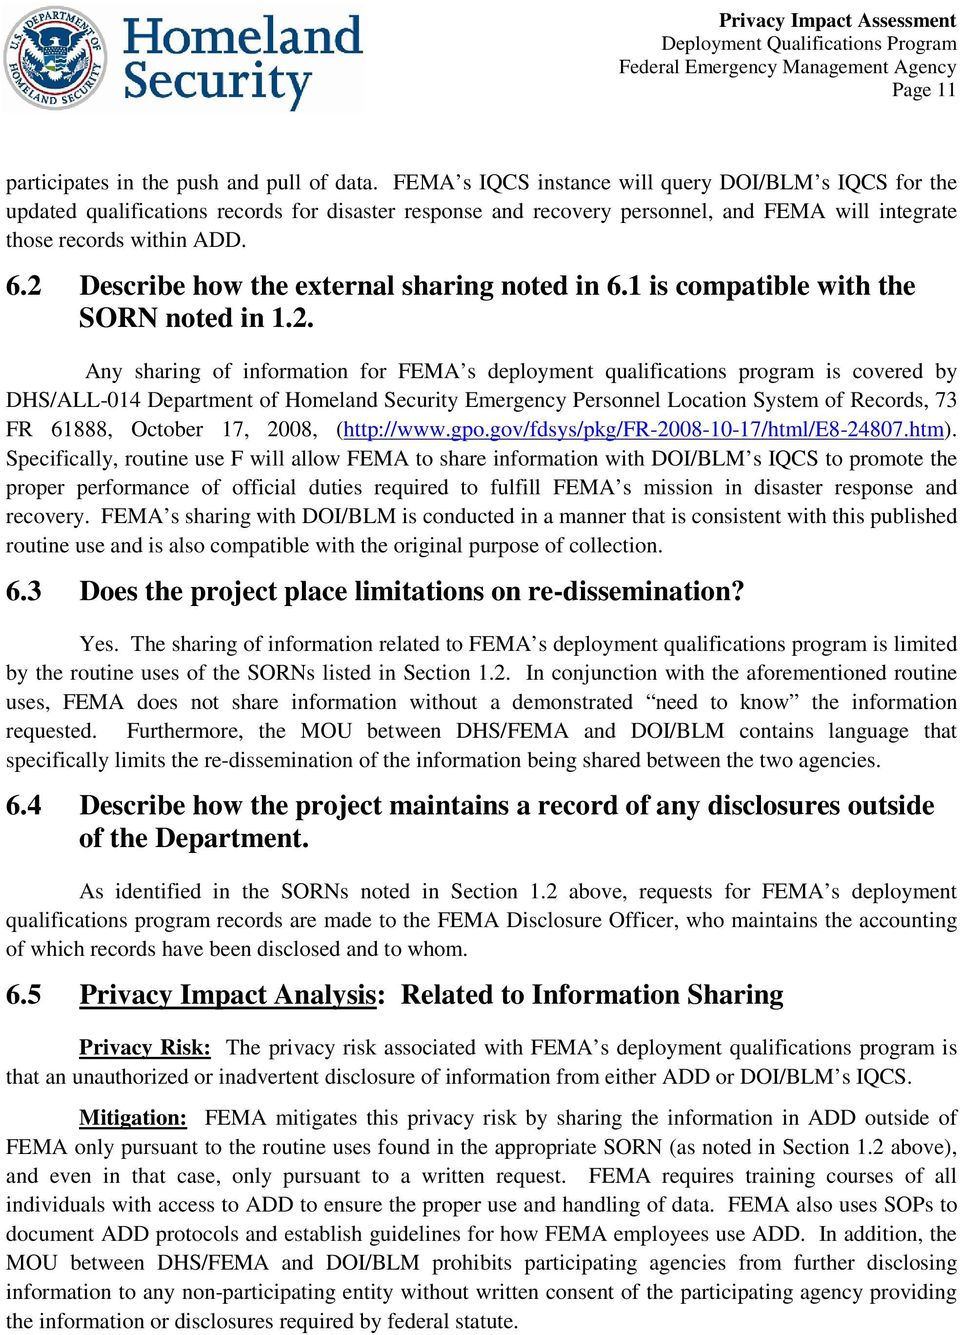 2 Describe how the external sharing noted in 6.1 is compatible with the SORN noted in 1.2. Any sharing of information for FEMA s deployment qualifications program is covered by DHS/ALL-014 Department